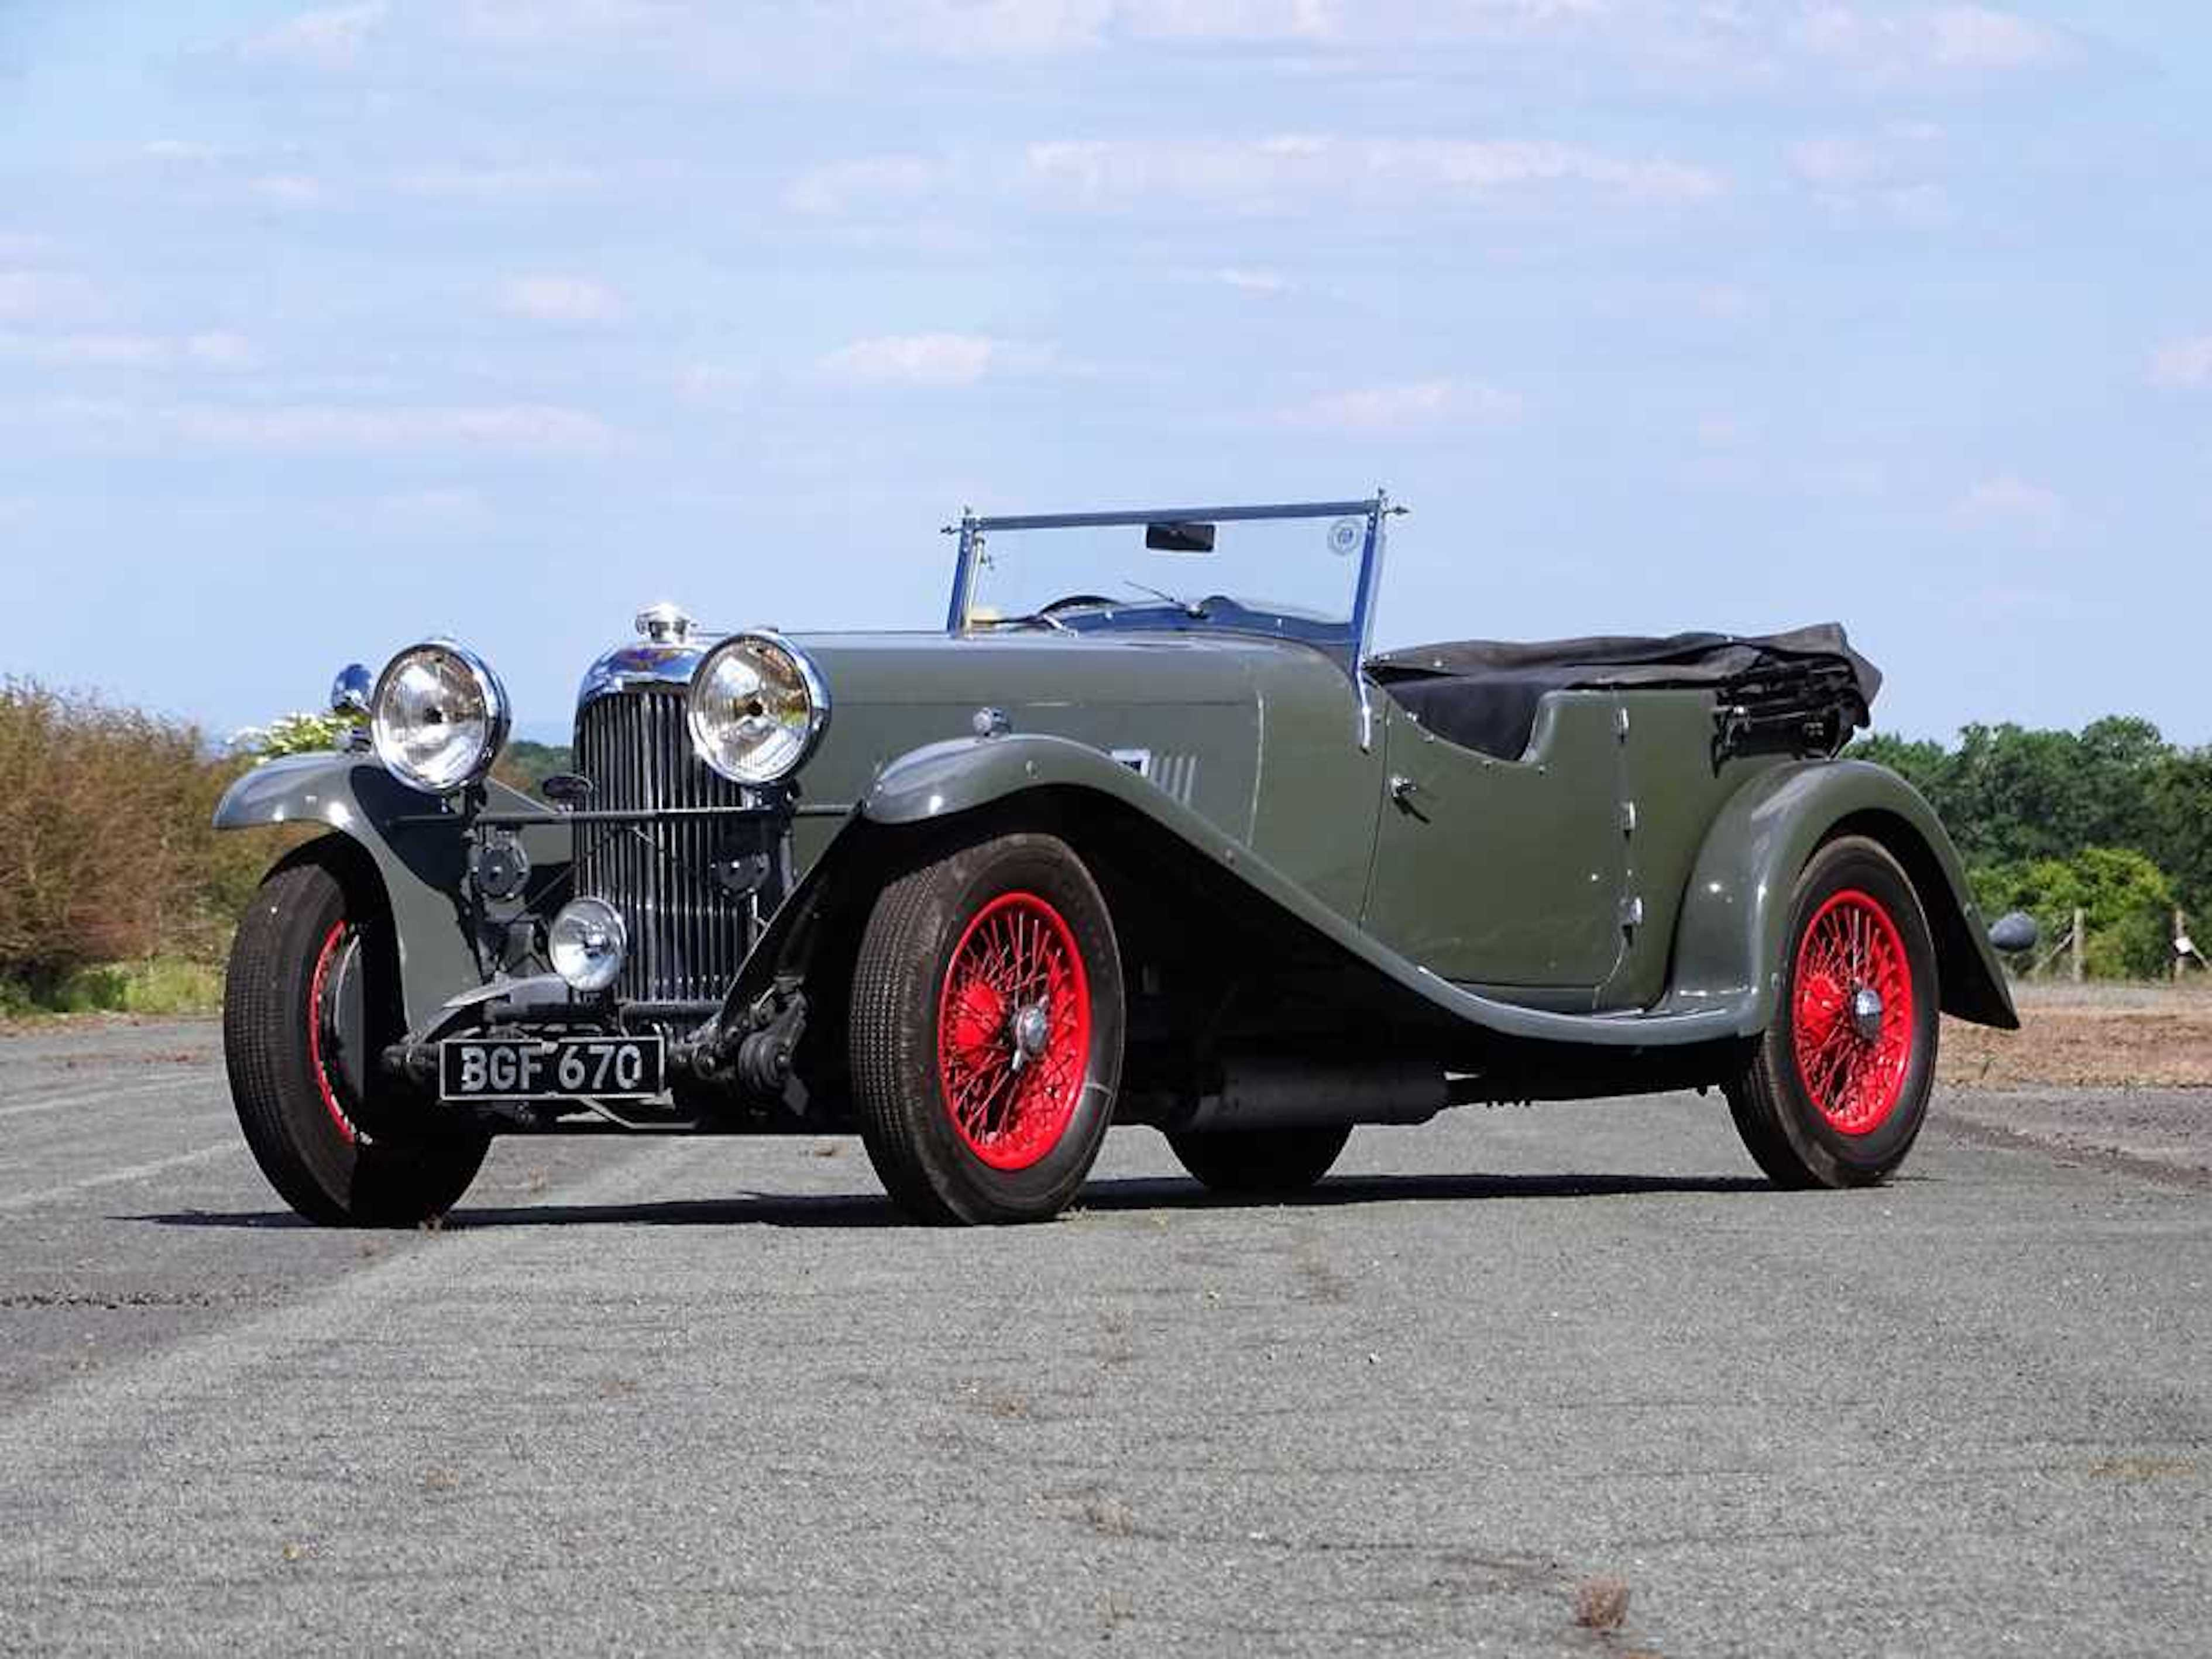 AMONG THE MOST DESIRABLE AND SPORTING LAGONDAS EVER MADE. 1934 LAGONDA M45 T7 TOURER